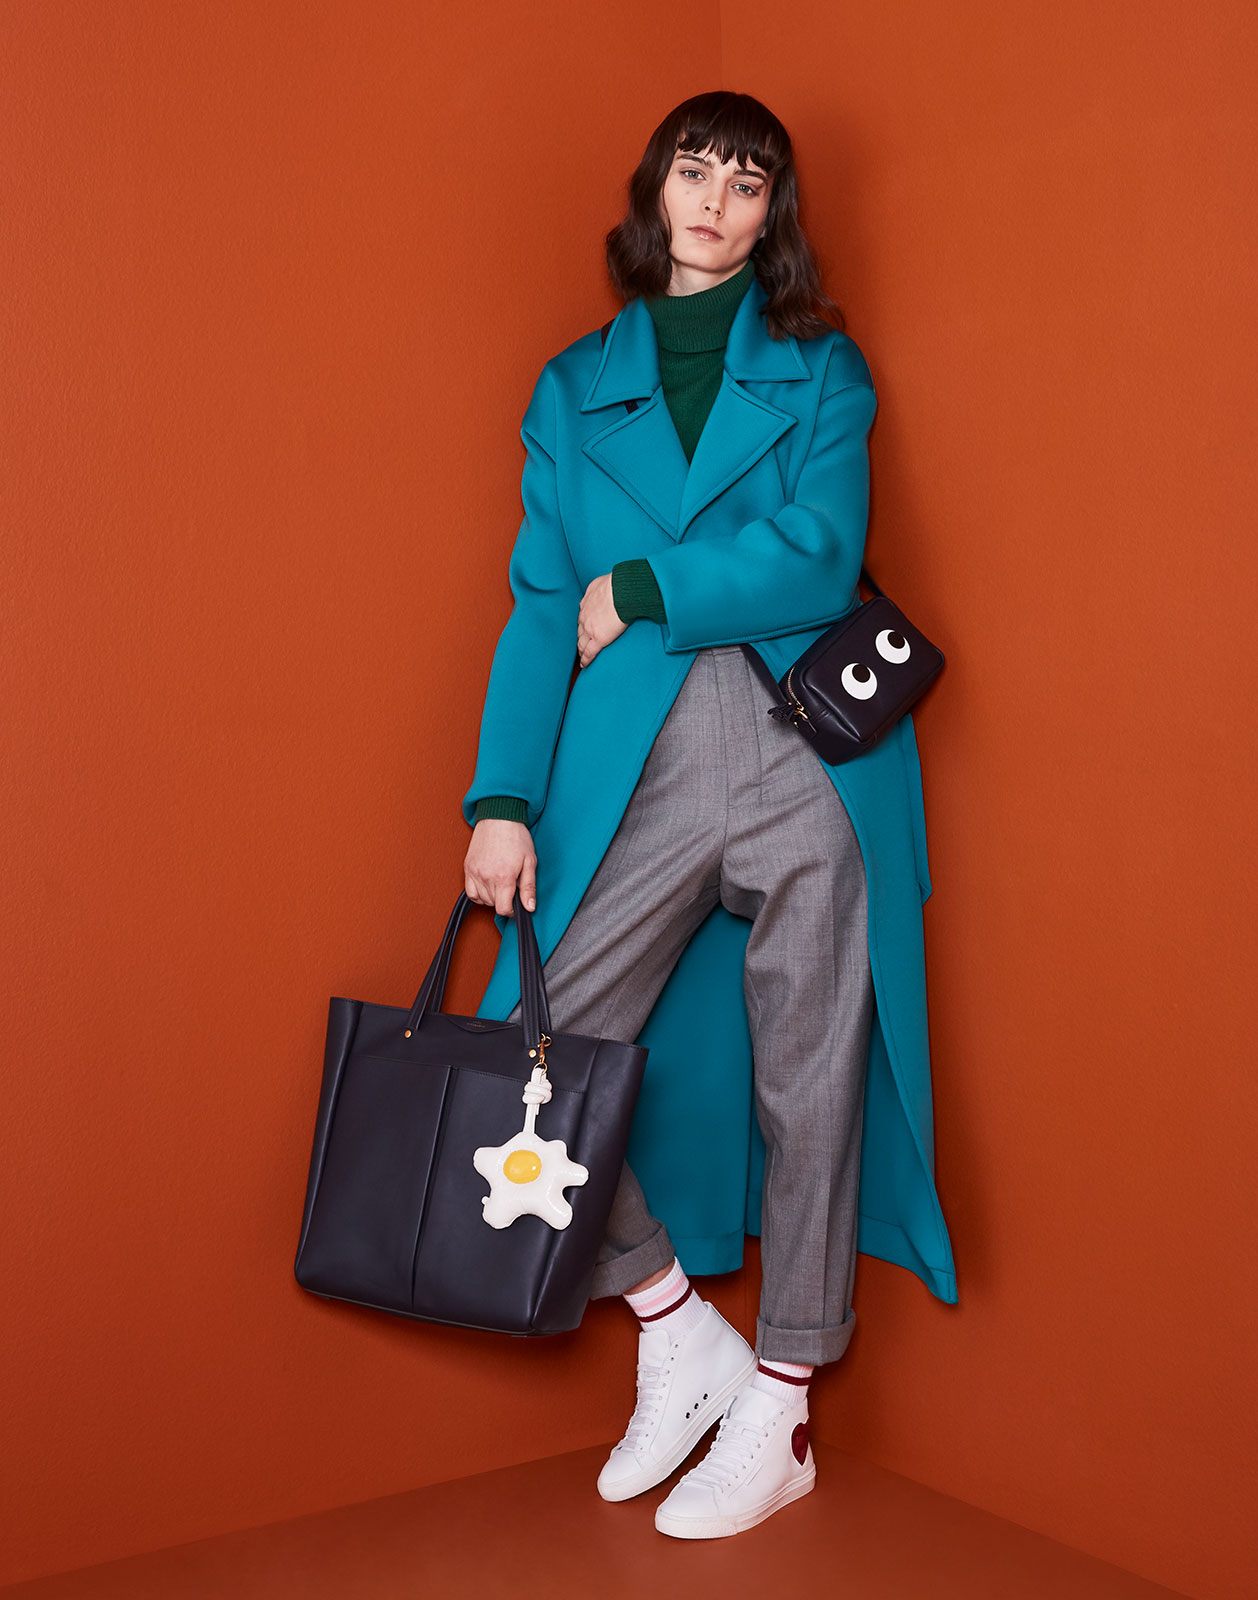 20180201_Anya_hindmarch_drop2_B35289_jb_crop_c60_n